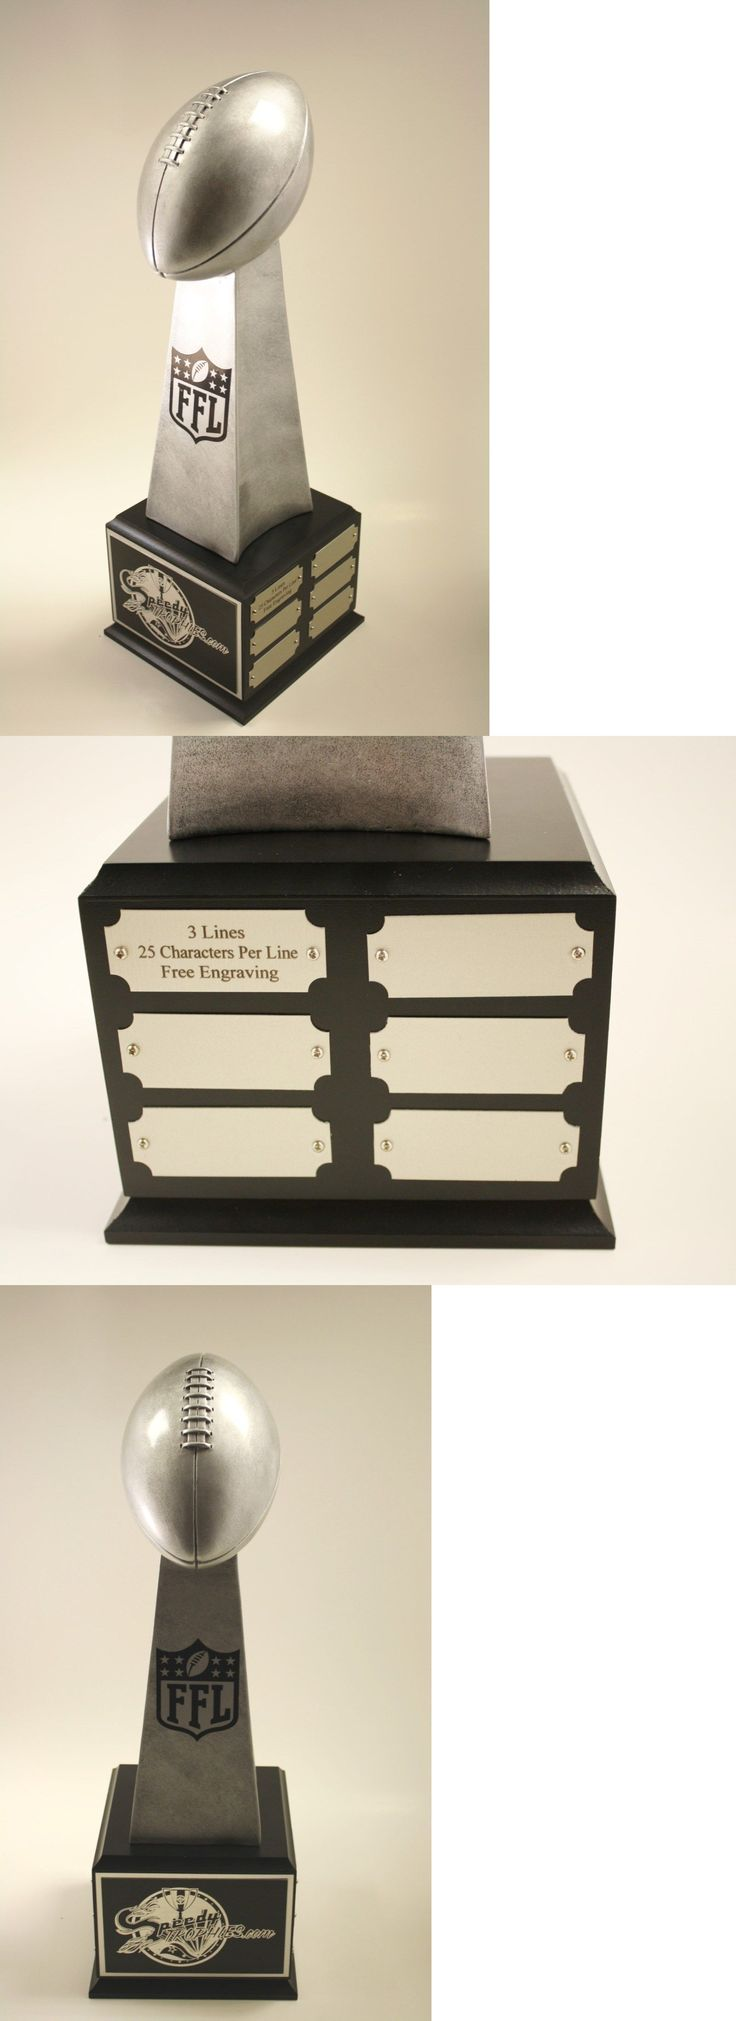 Other Football 2024: Fantasy Football Trophy 19 18 Year Lombardi- Free Engraving! Ships In 1 Day! BUY IT NOW ONLY: $73.99